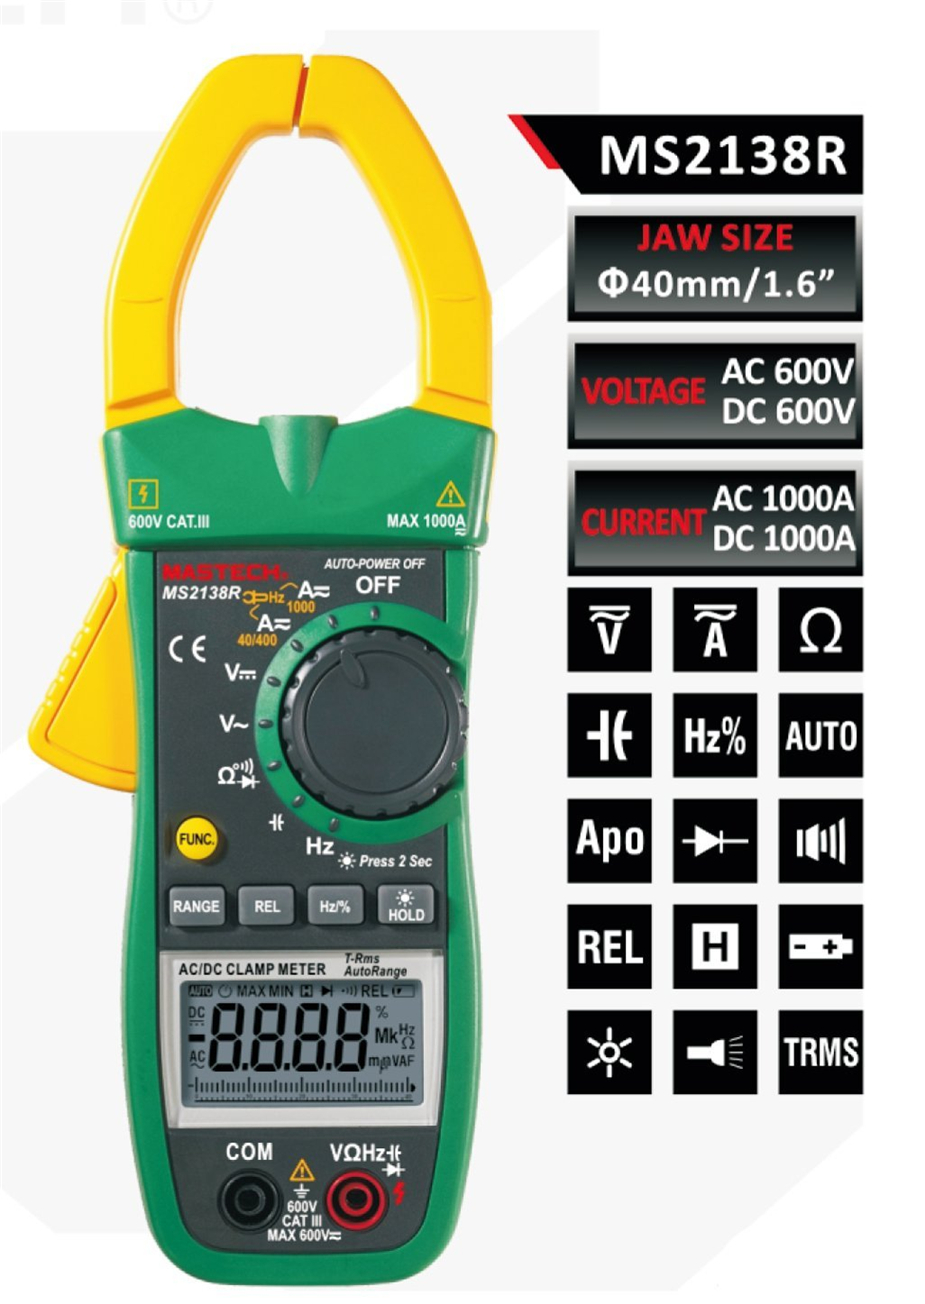 Hot MASTECH MS2138R 4000 Counts Digital AC DC Clamp Meter Multimeter Voltage Current Capacitance Resistance Tester mastech ms2001c digital clamp meter multimeter ac dc voltage current diode resistance measurement